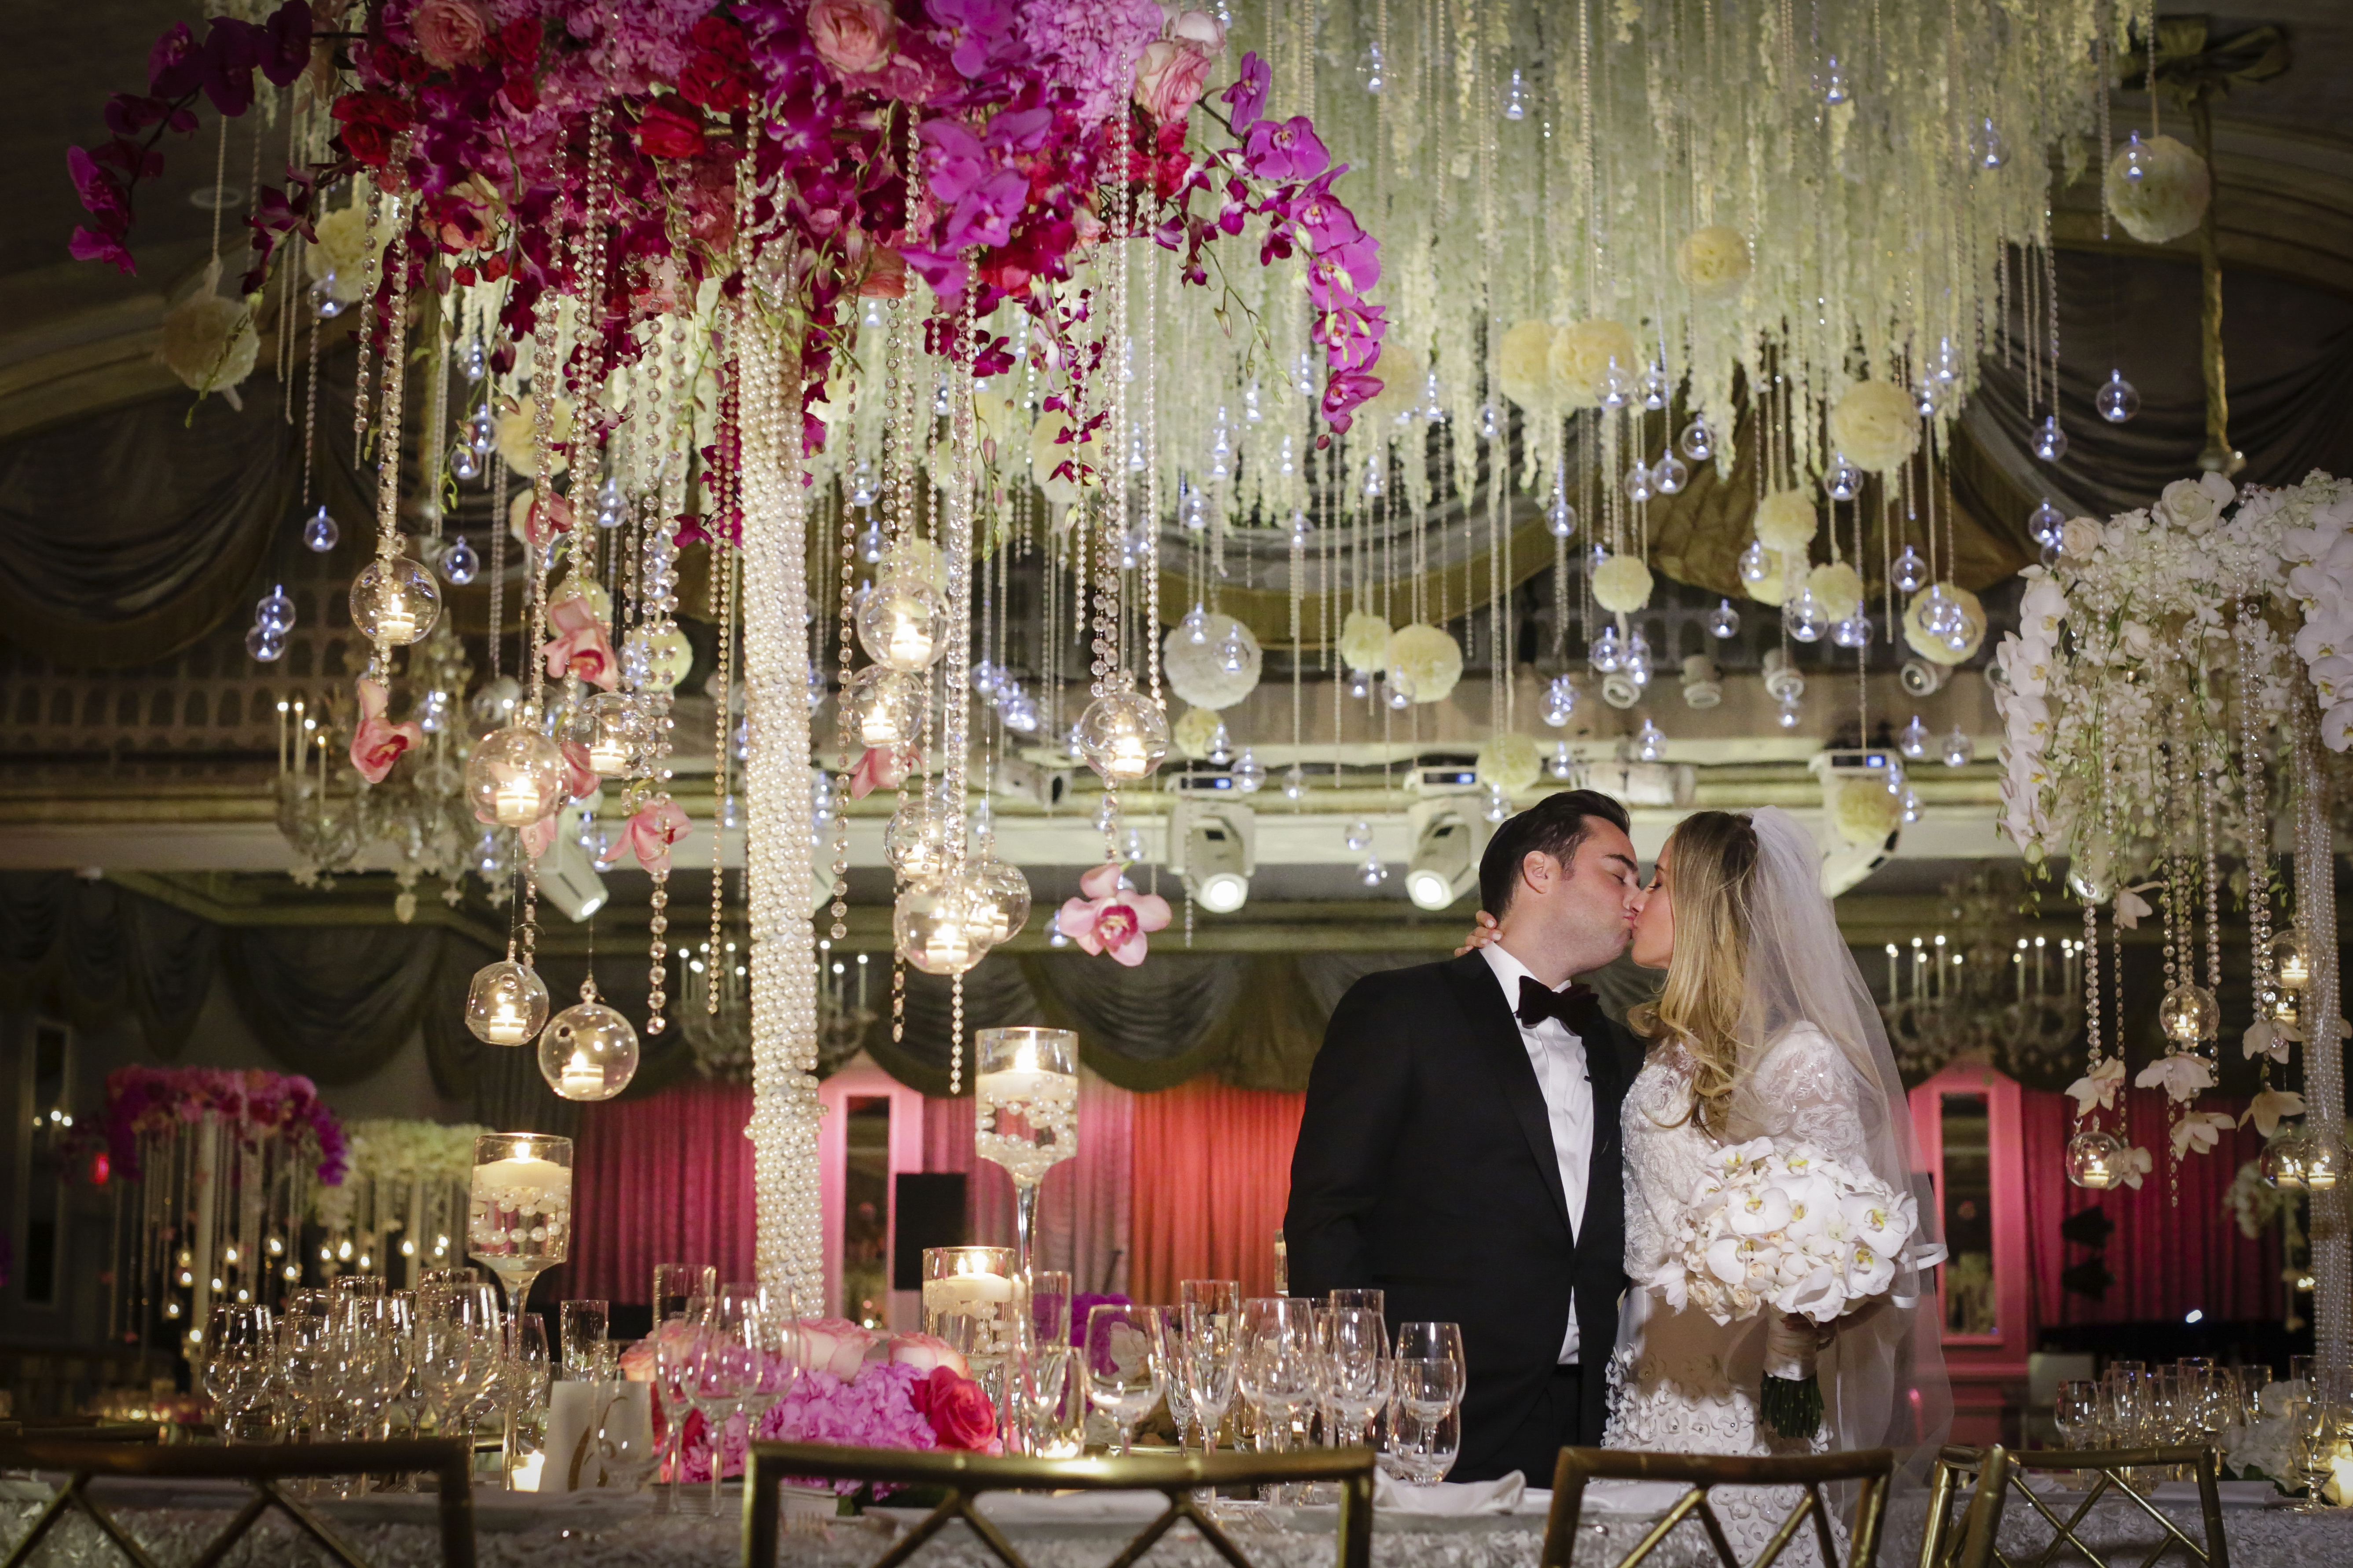 Exquisite Wedding at The Pierre - Anthony Vazquez Photography